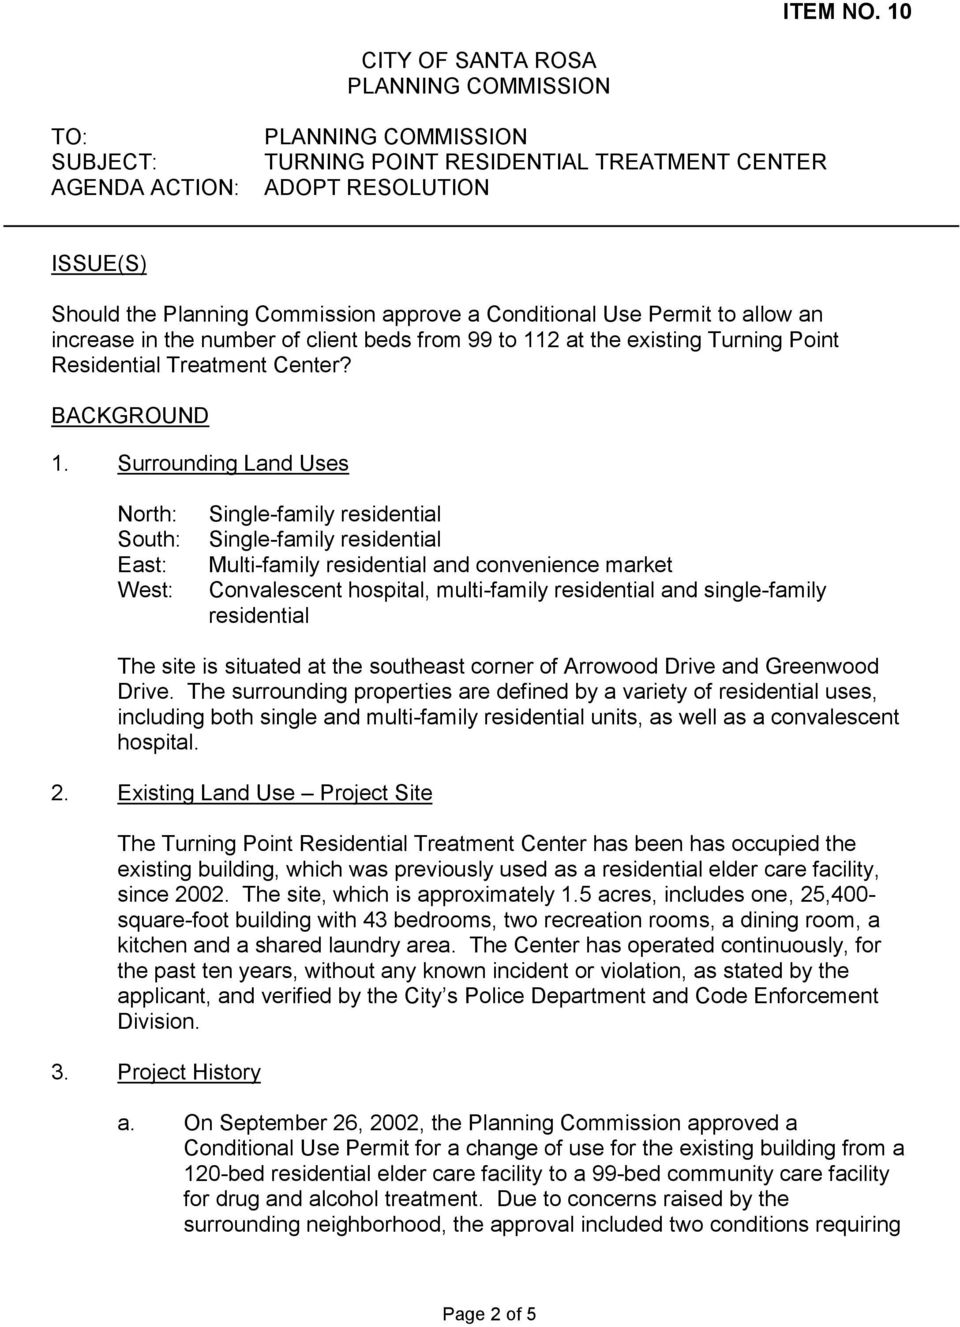 Conditional Use Permit to allow an increase in the number of client beds from 99 to 112 at the existing Turning Point Residential Treatment Center? BACKGROUND 1.